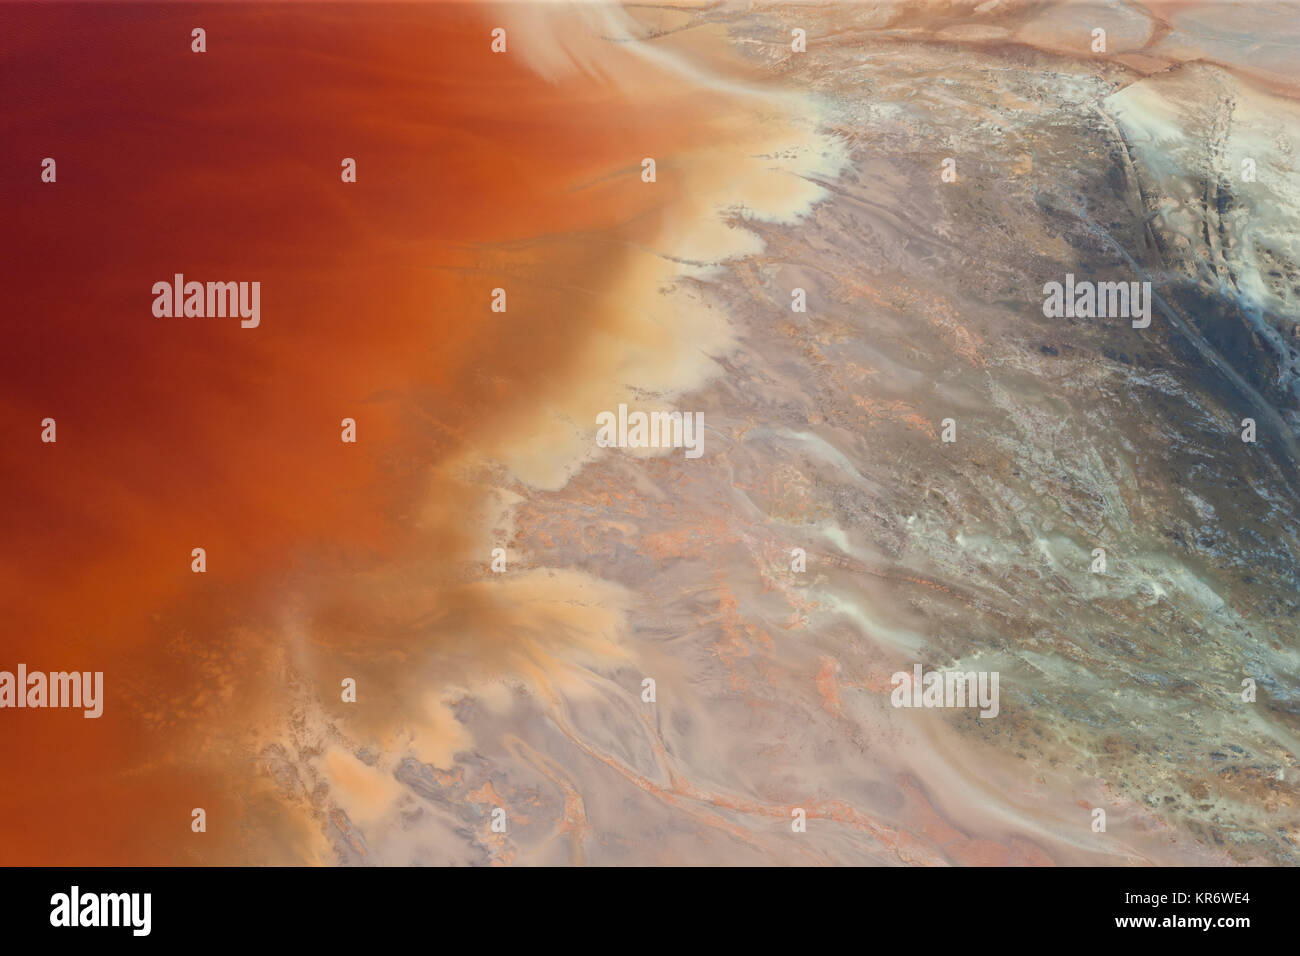 Aerial shot of oxidized iron minerals in water in old mining area. - Stock Image